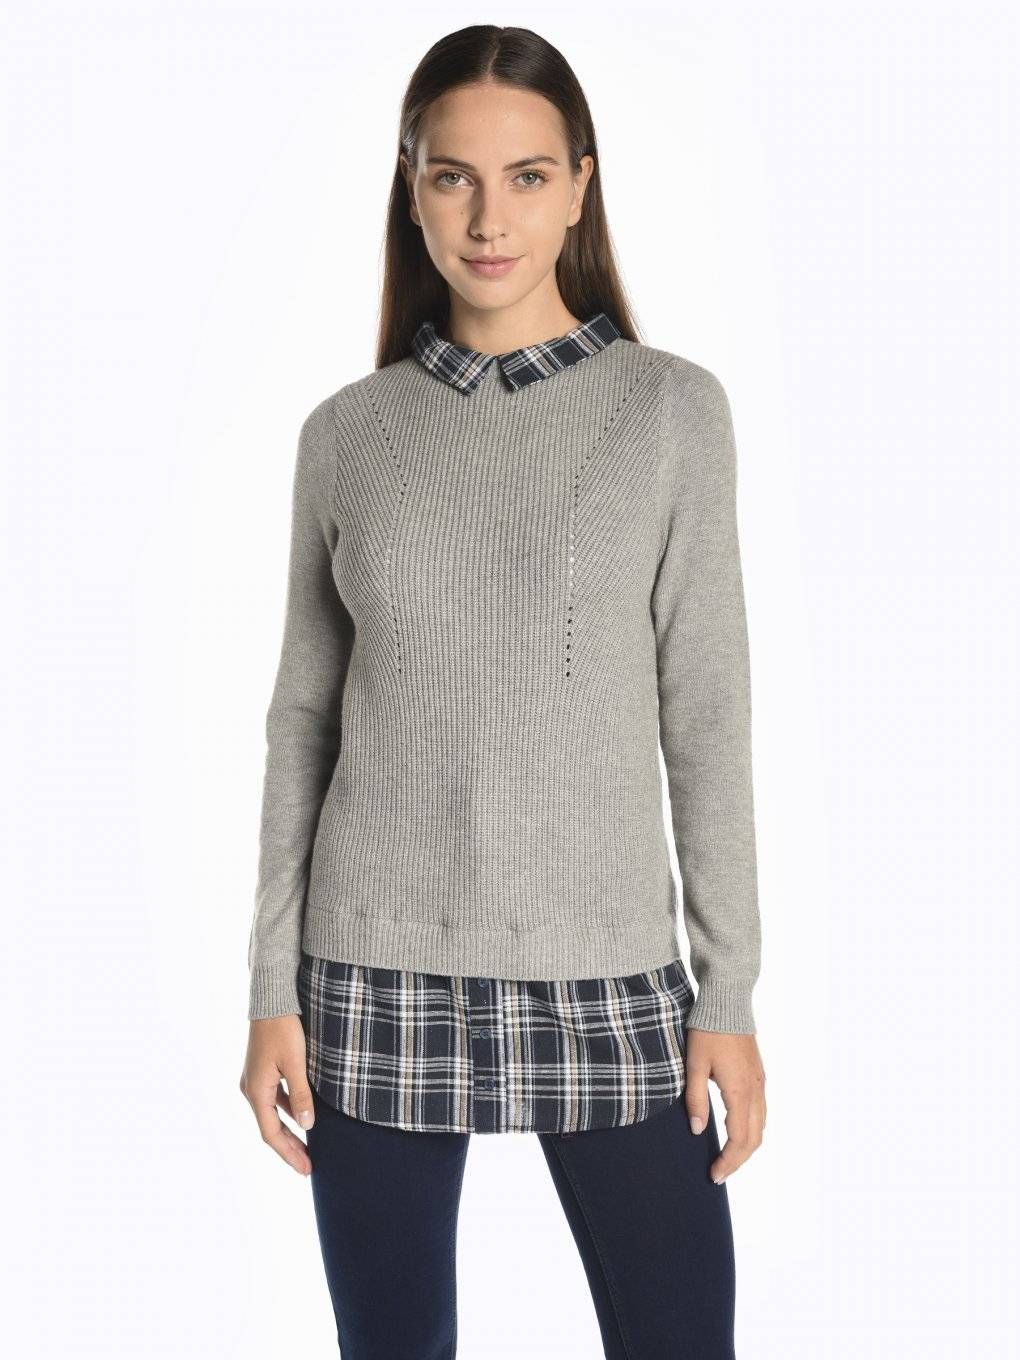 Structured pullover with shirt details